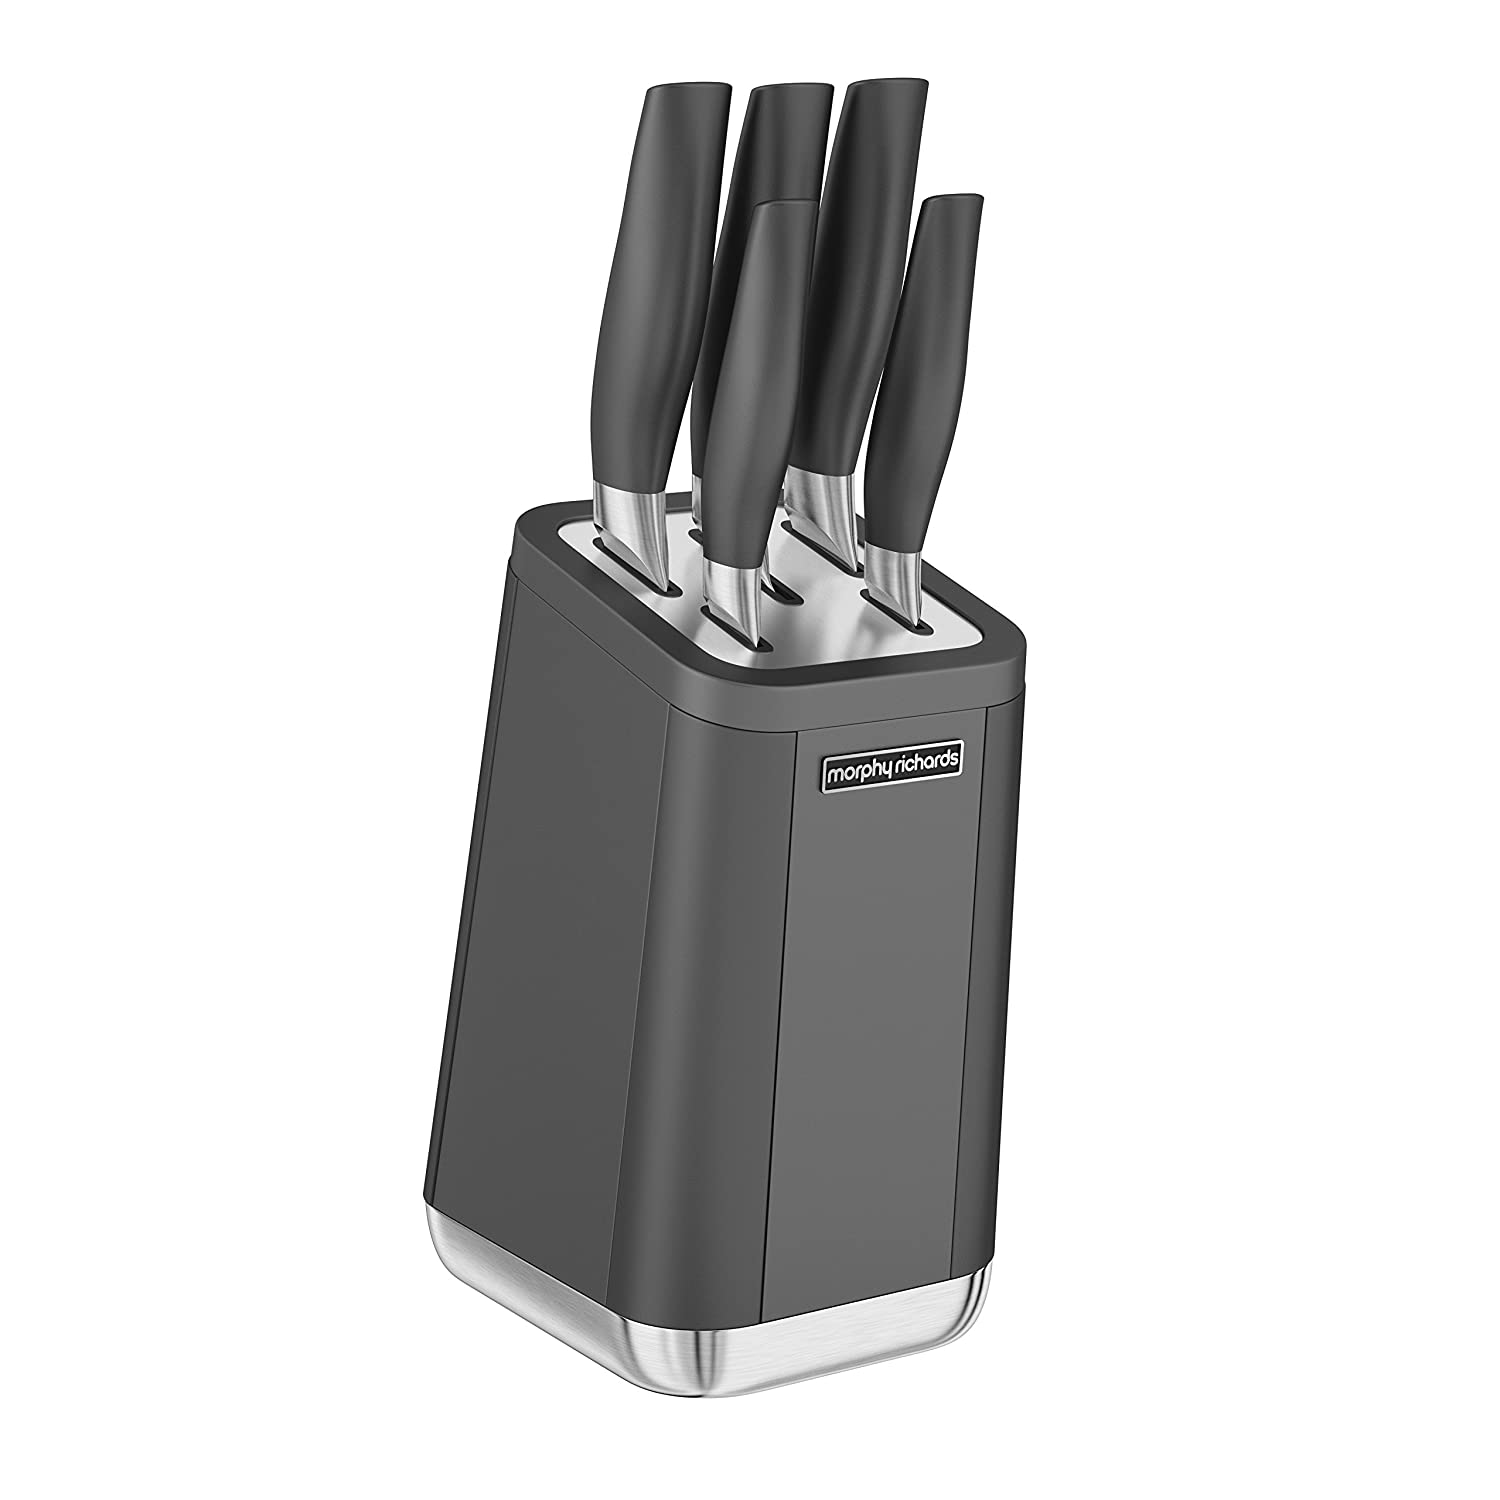 Morphy Richards 972202 Aspect Stone Coated Stainless Steel 5 Piece Knife Set with Block, Black RKW